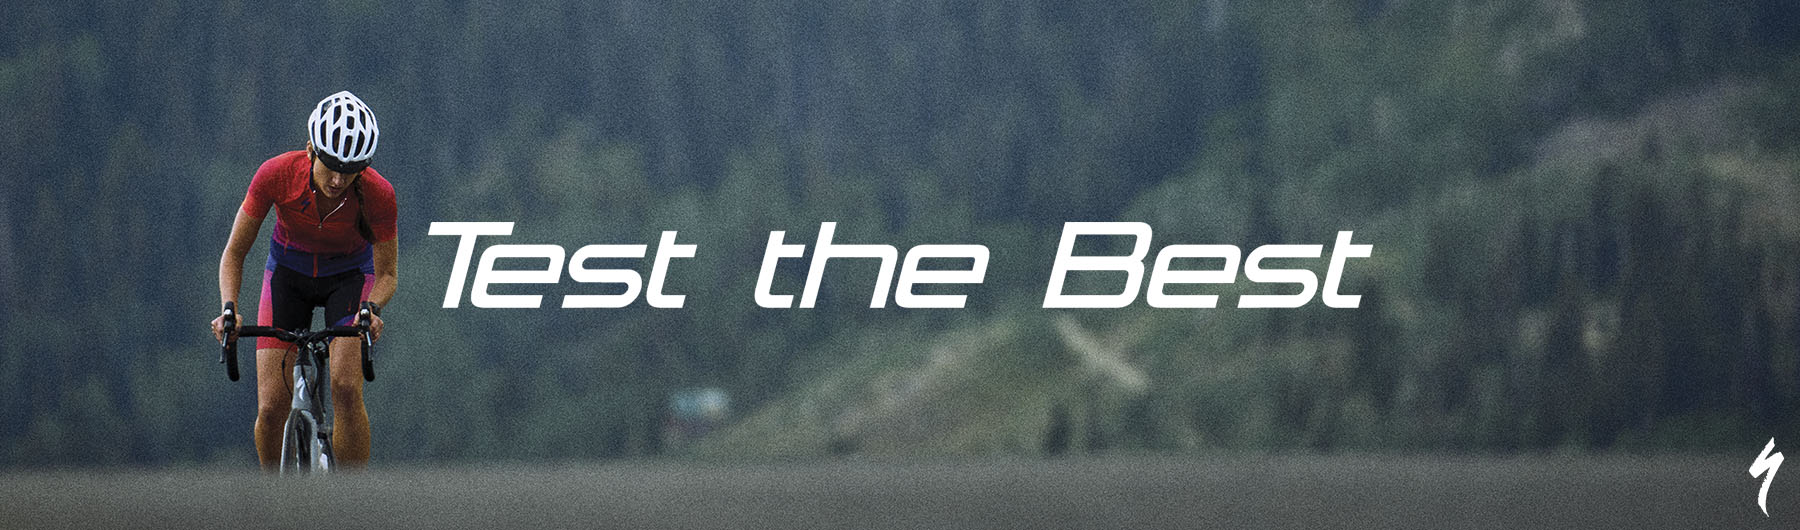 Test The Best - Spring Road Tour